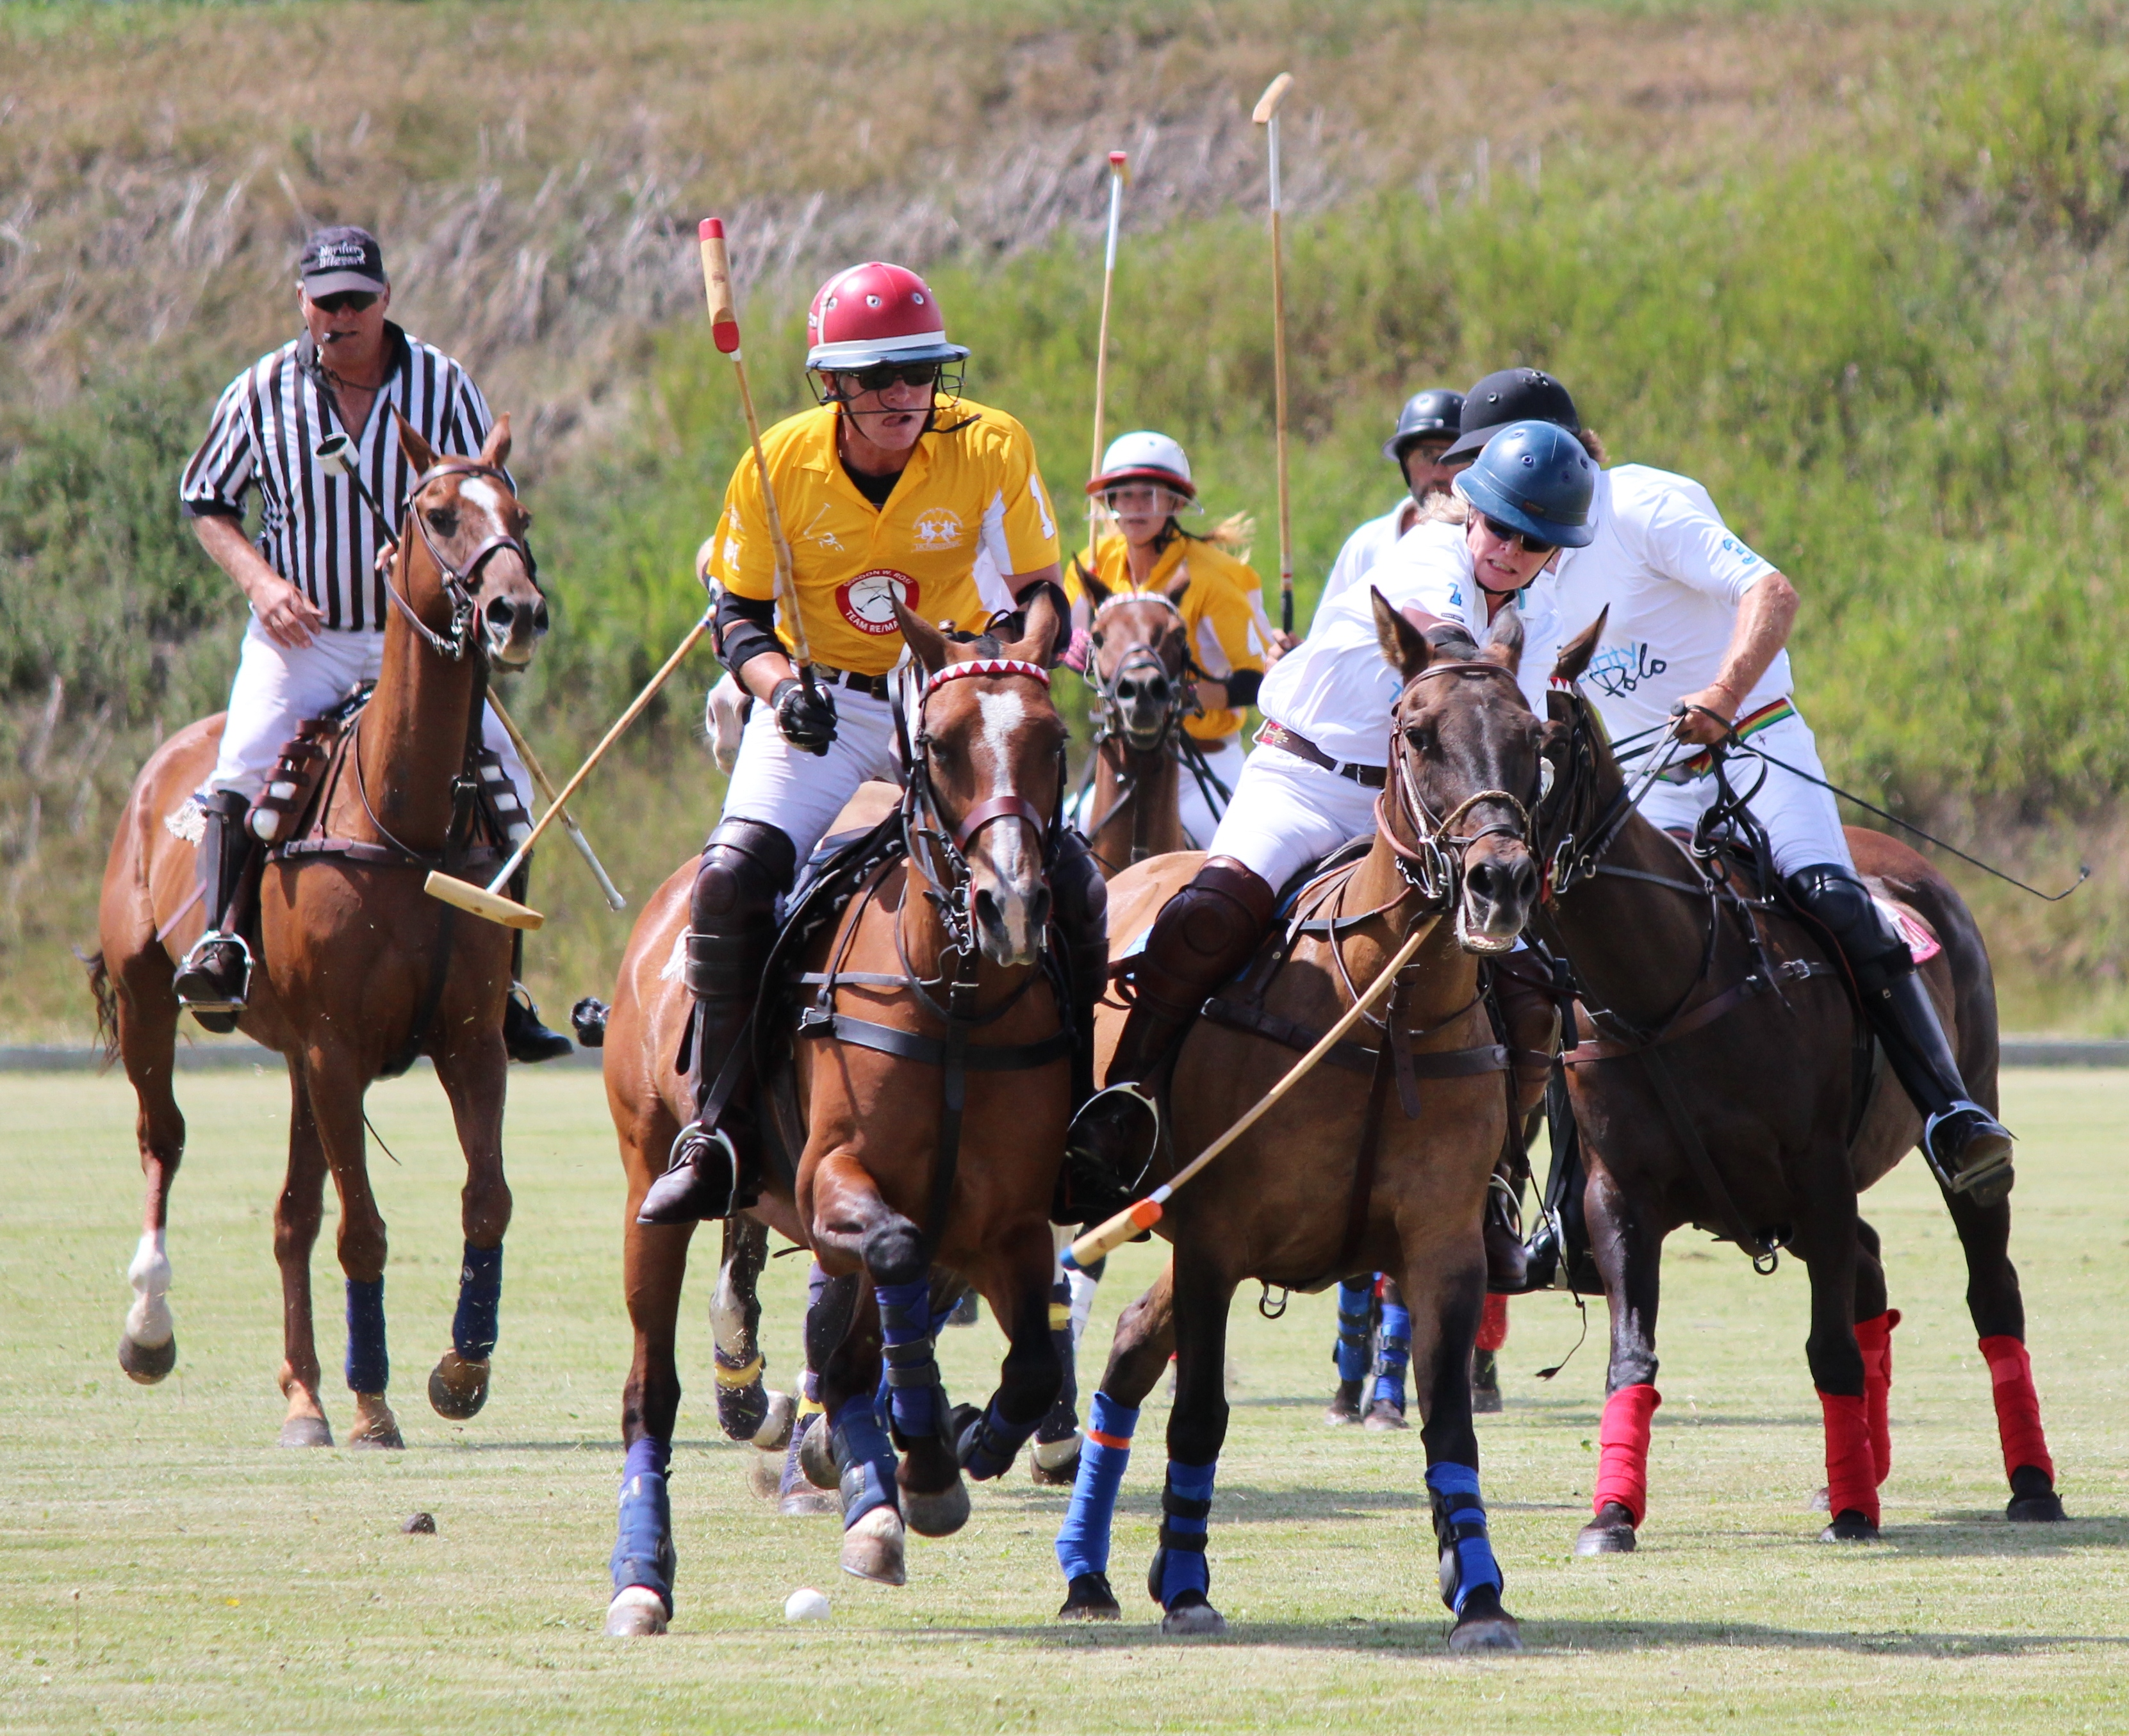 Action from The Calgary Challenge Cup